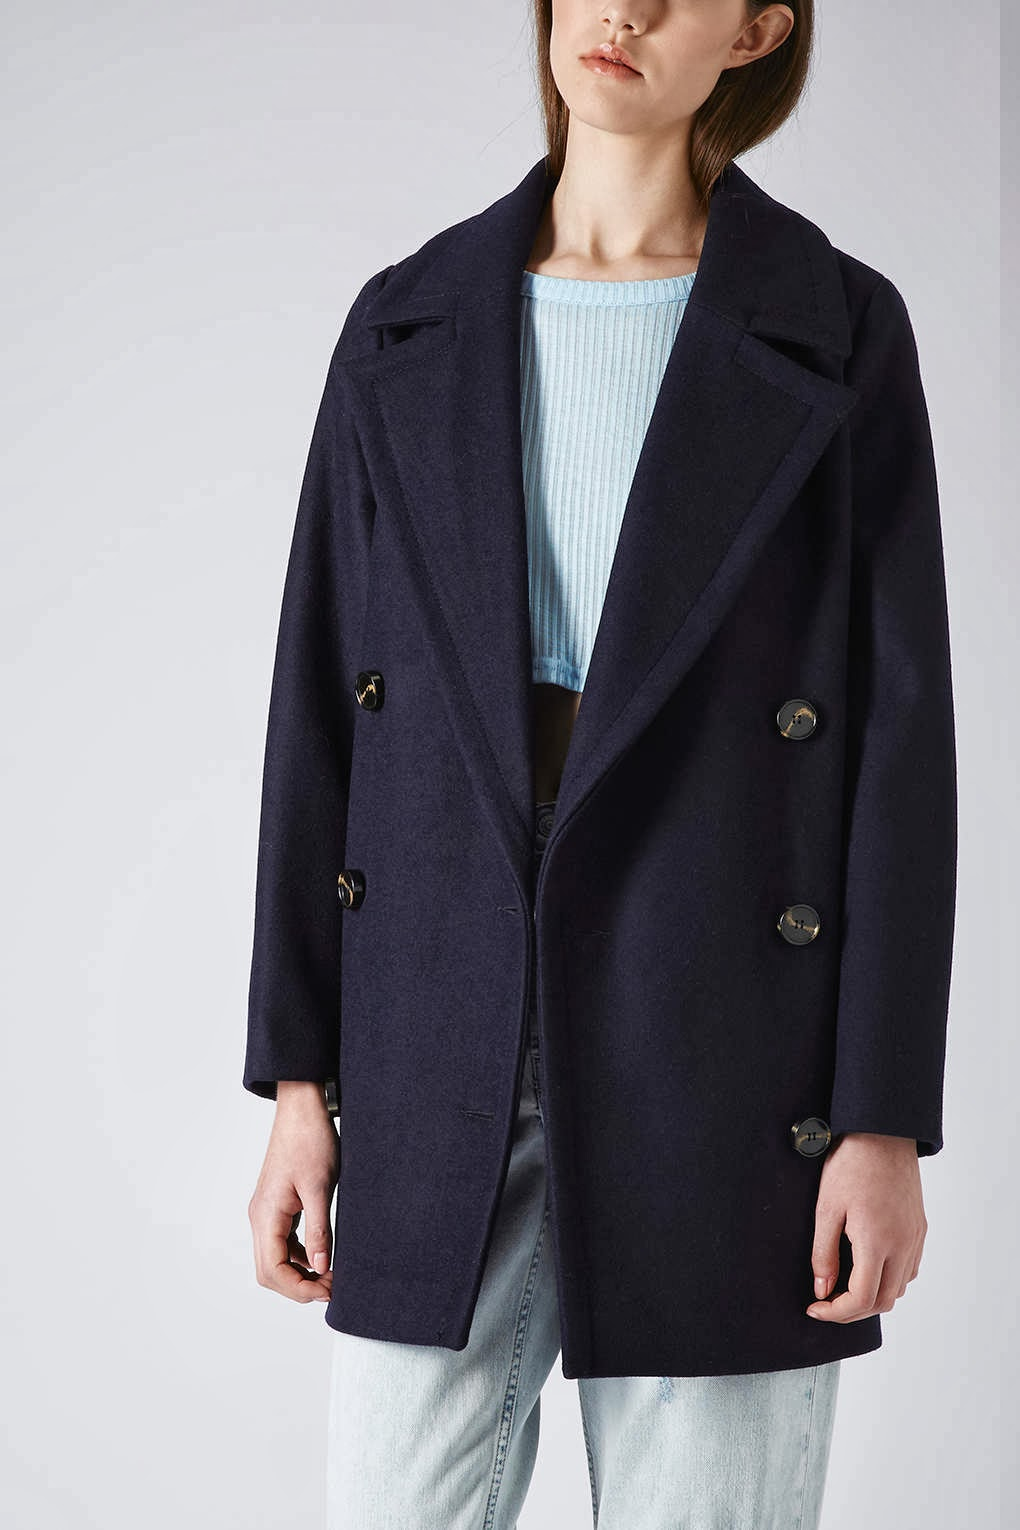 topshop navy coat